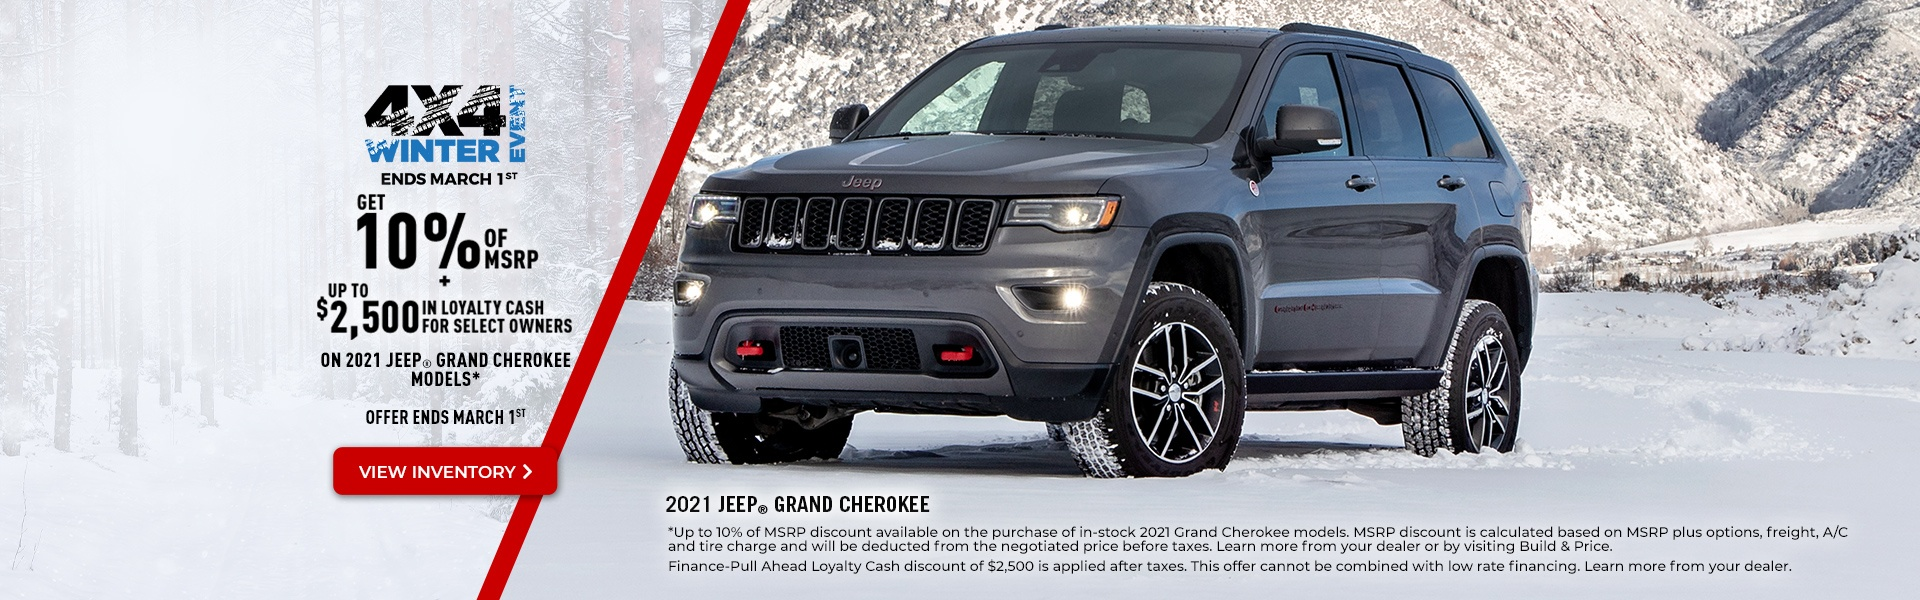 2021 Jeep Grand Cherokee Promotional Banner